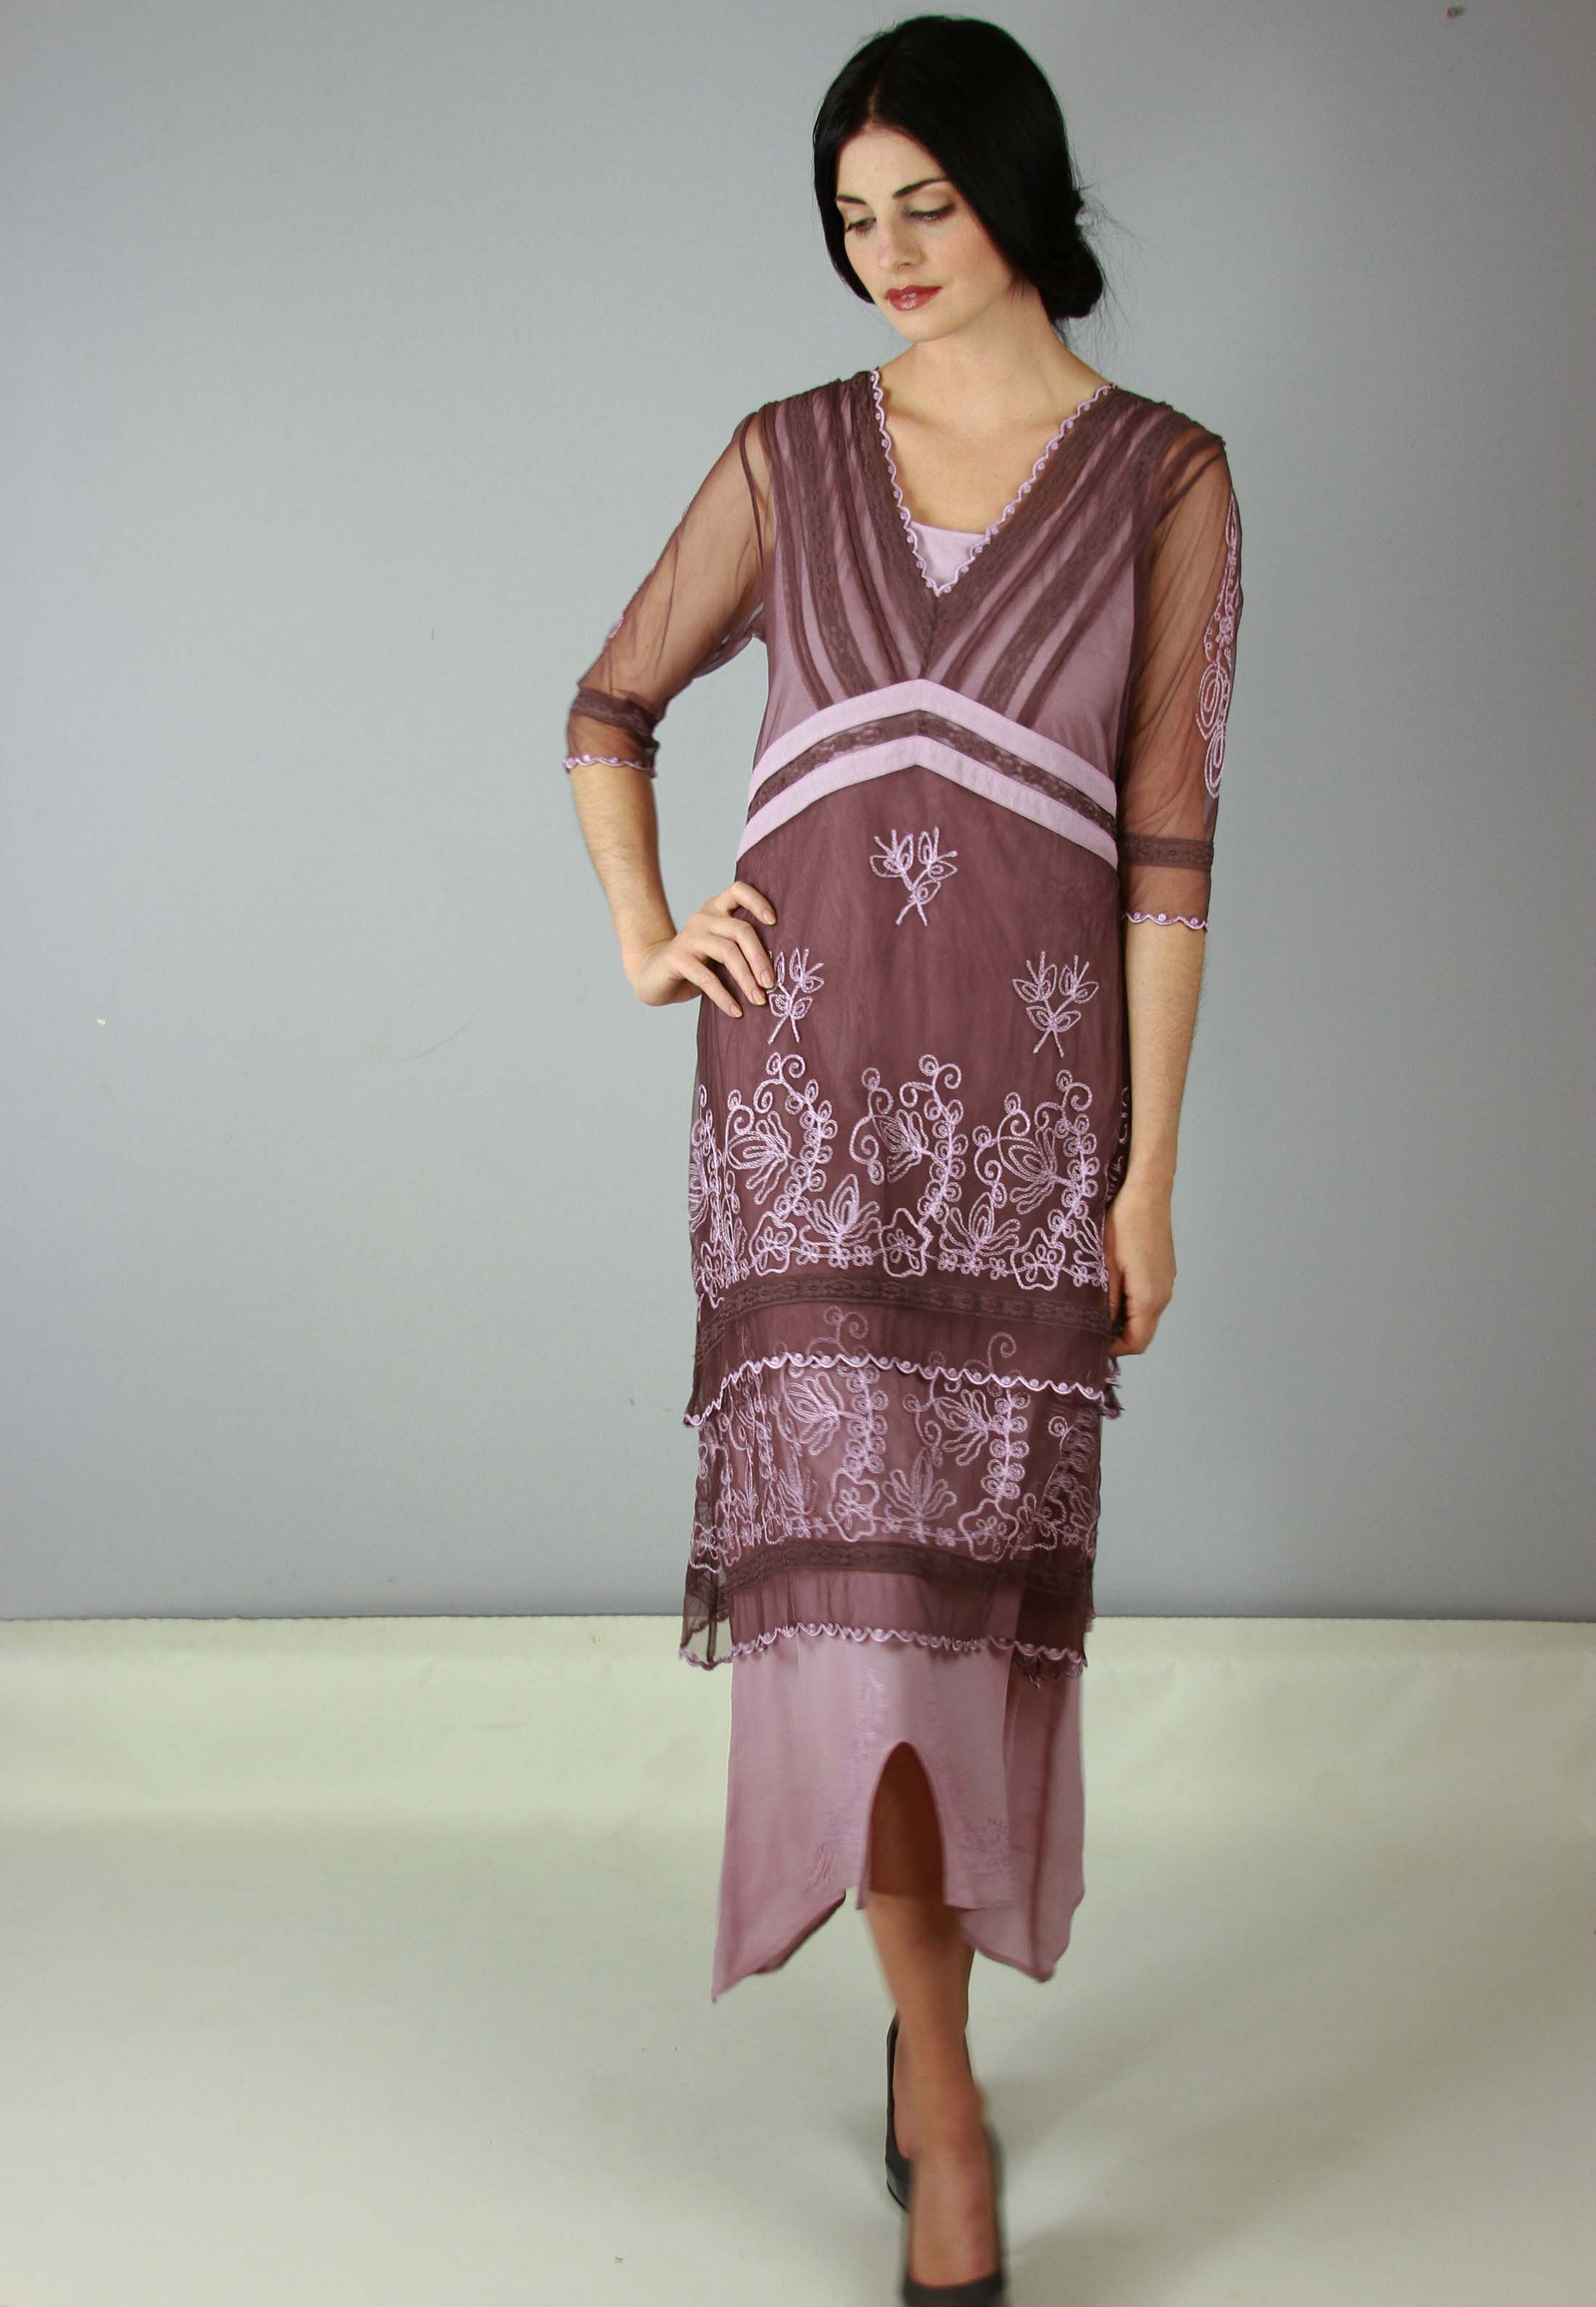 3e4b9d3fcf5 Vintage Titanic Tea Party Dress in Mauve by Nataya - SOLD OUT